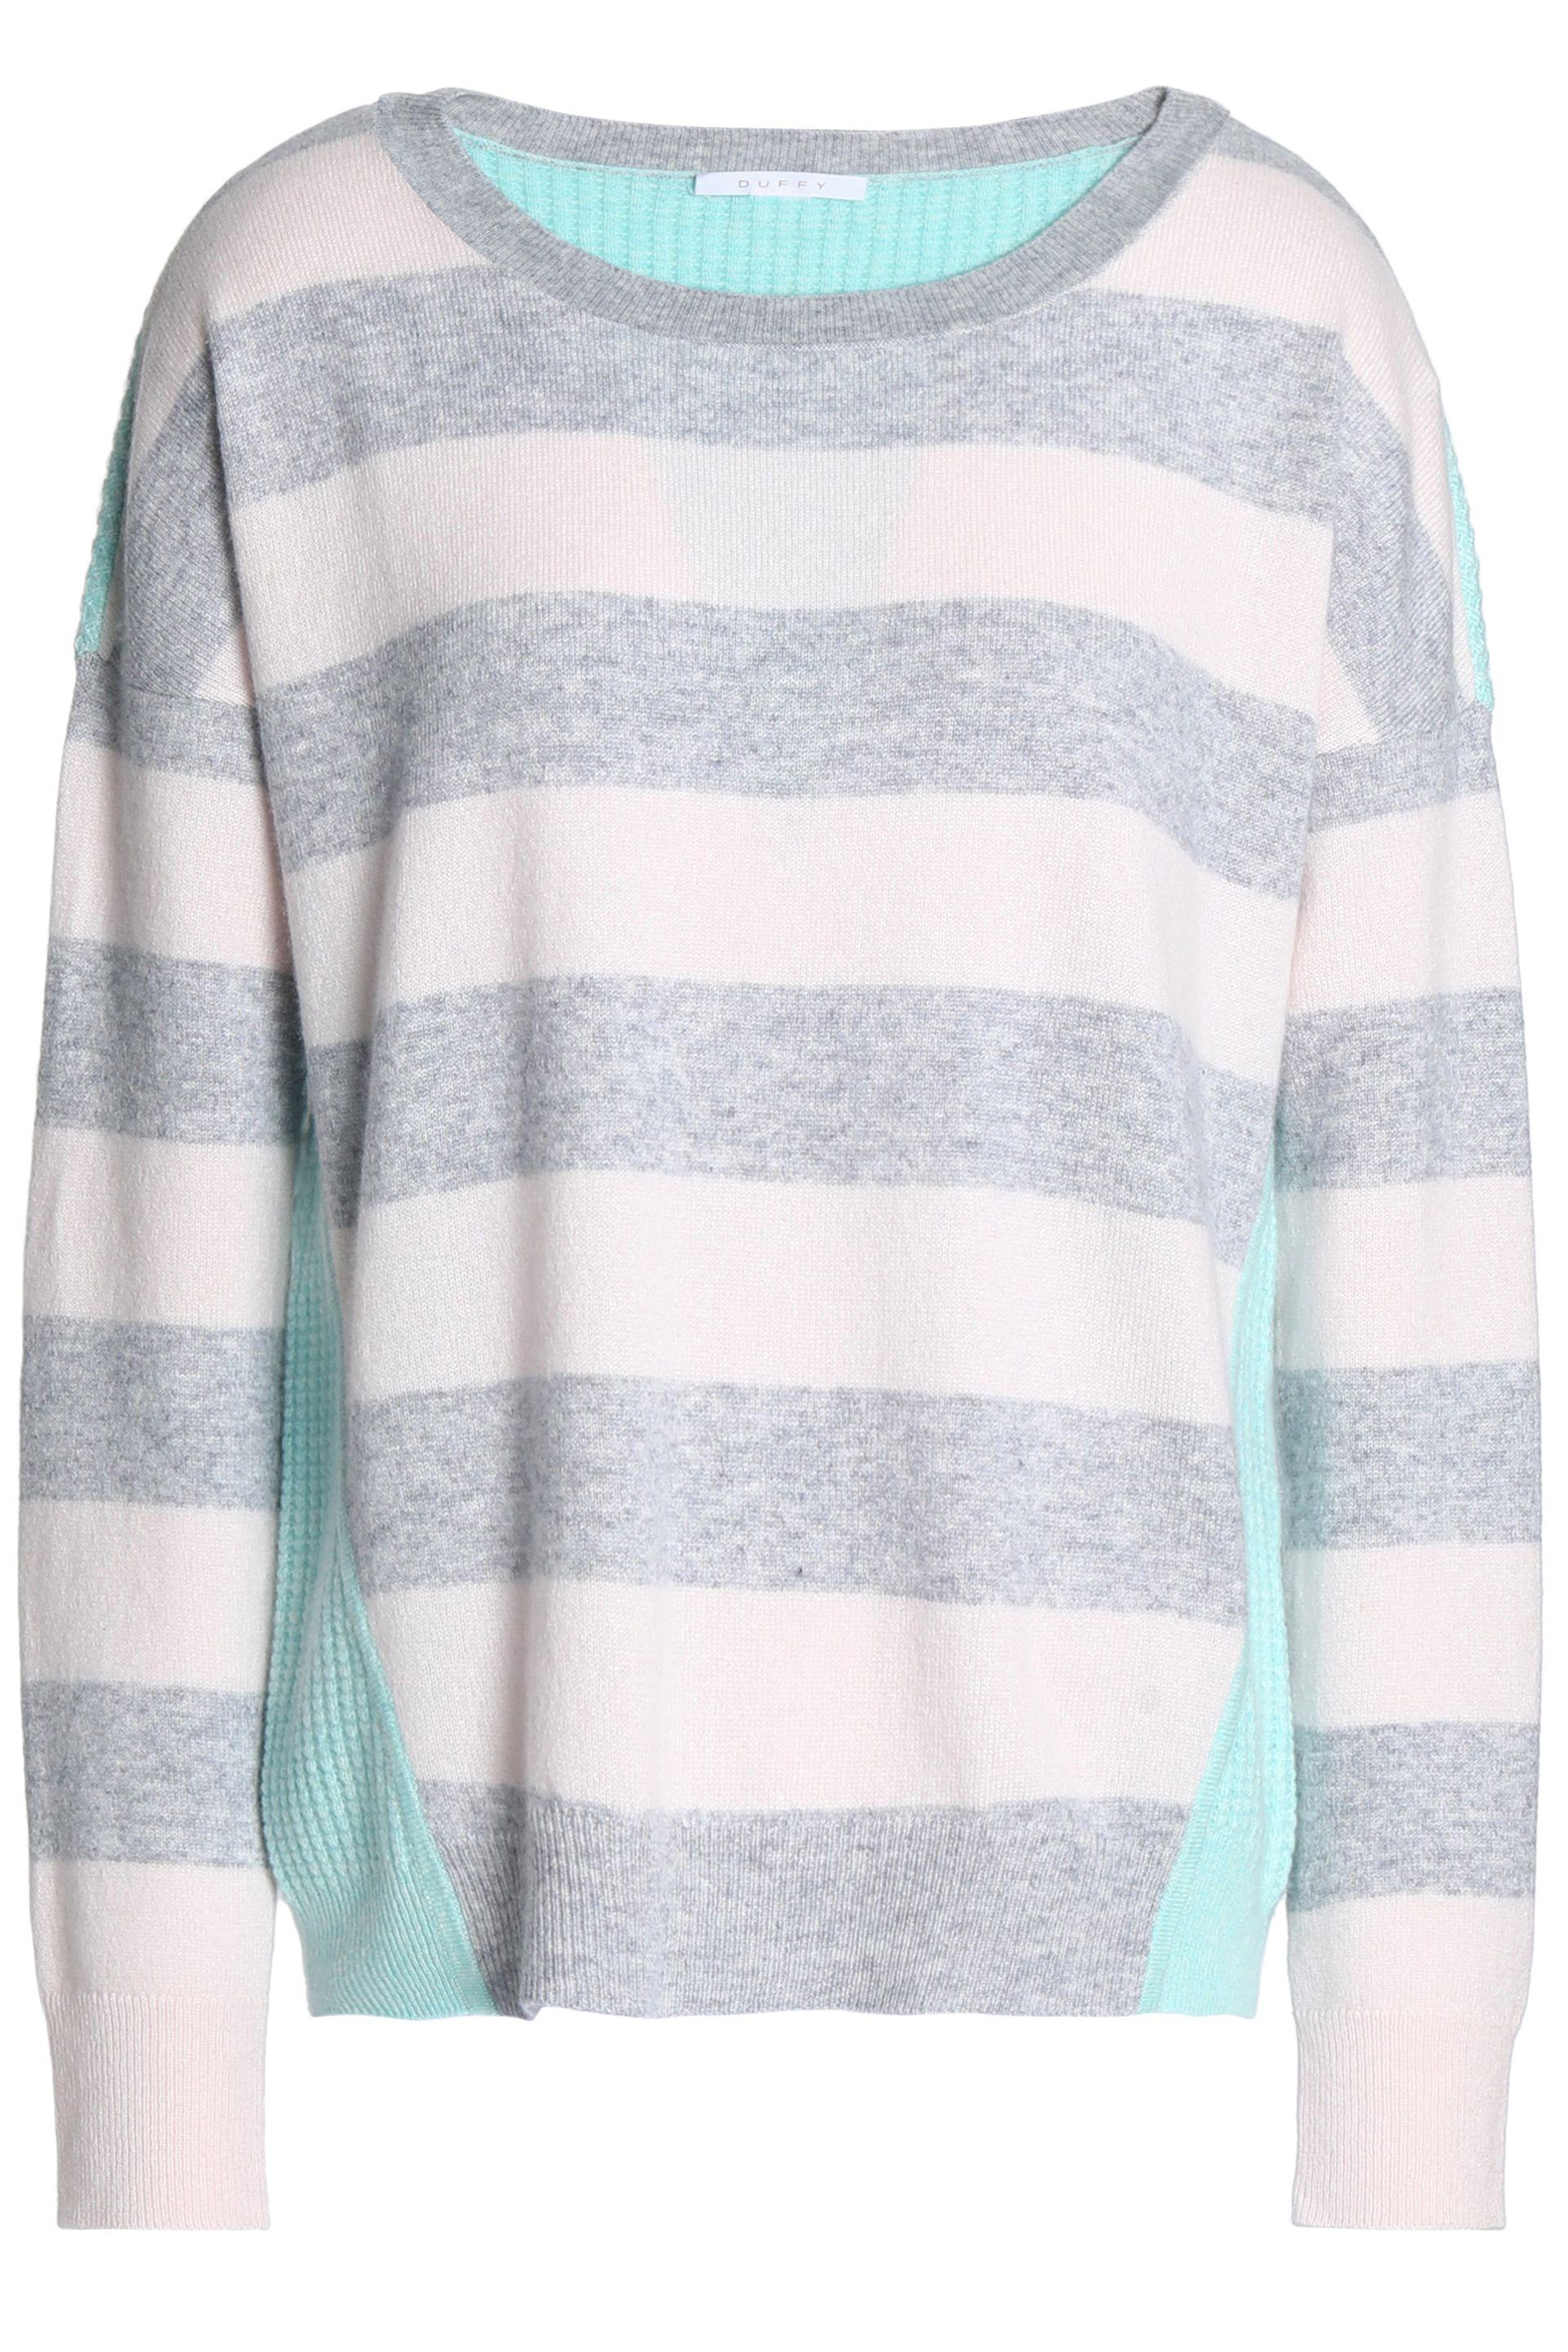 deb0b79b7f30e4 Duffy Woman Waffle Knit-paneled Striped Cashmere Sweater Gray in ...